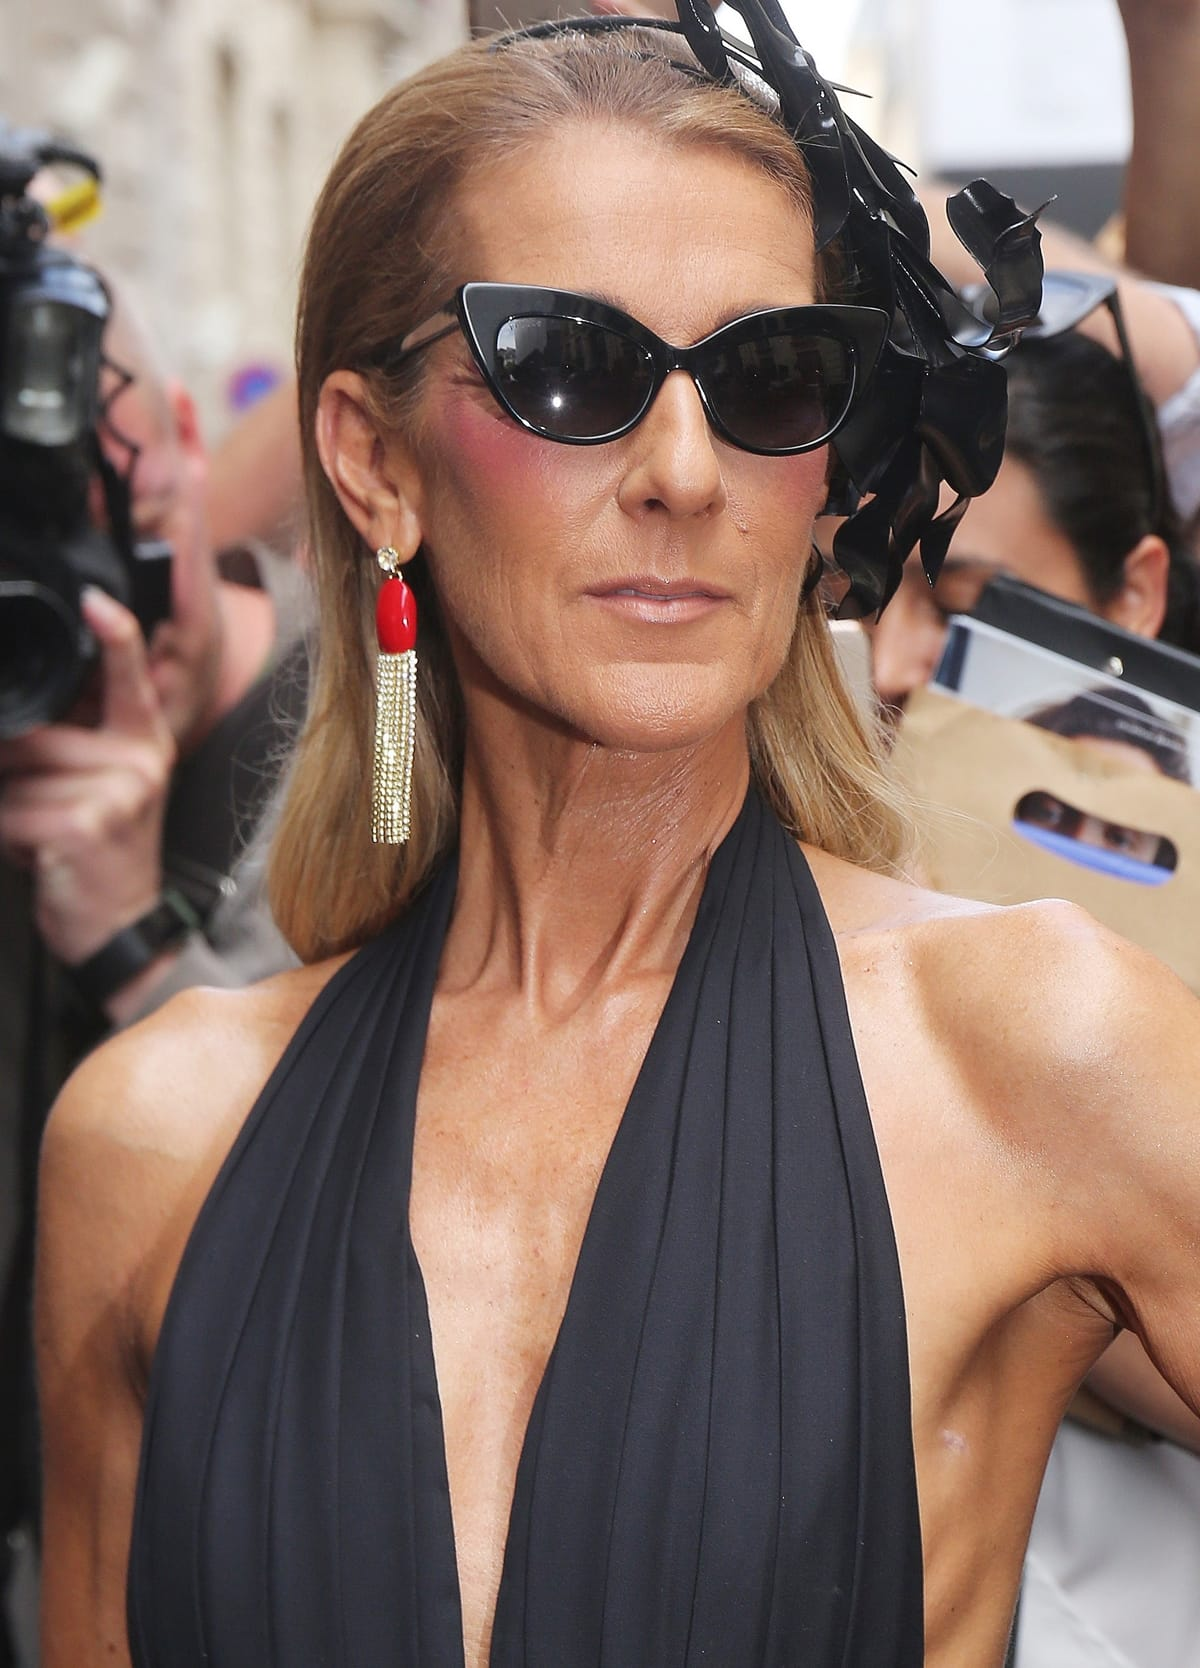 Celine Dion appeared thinner than usual at the Schiaparelli Fall '19 couture show in Paris